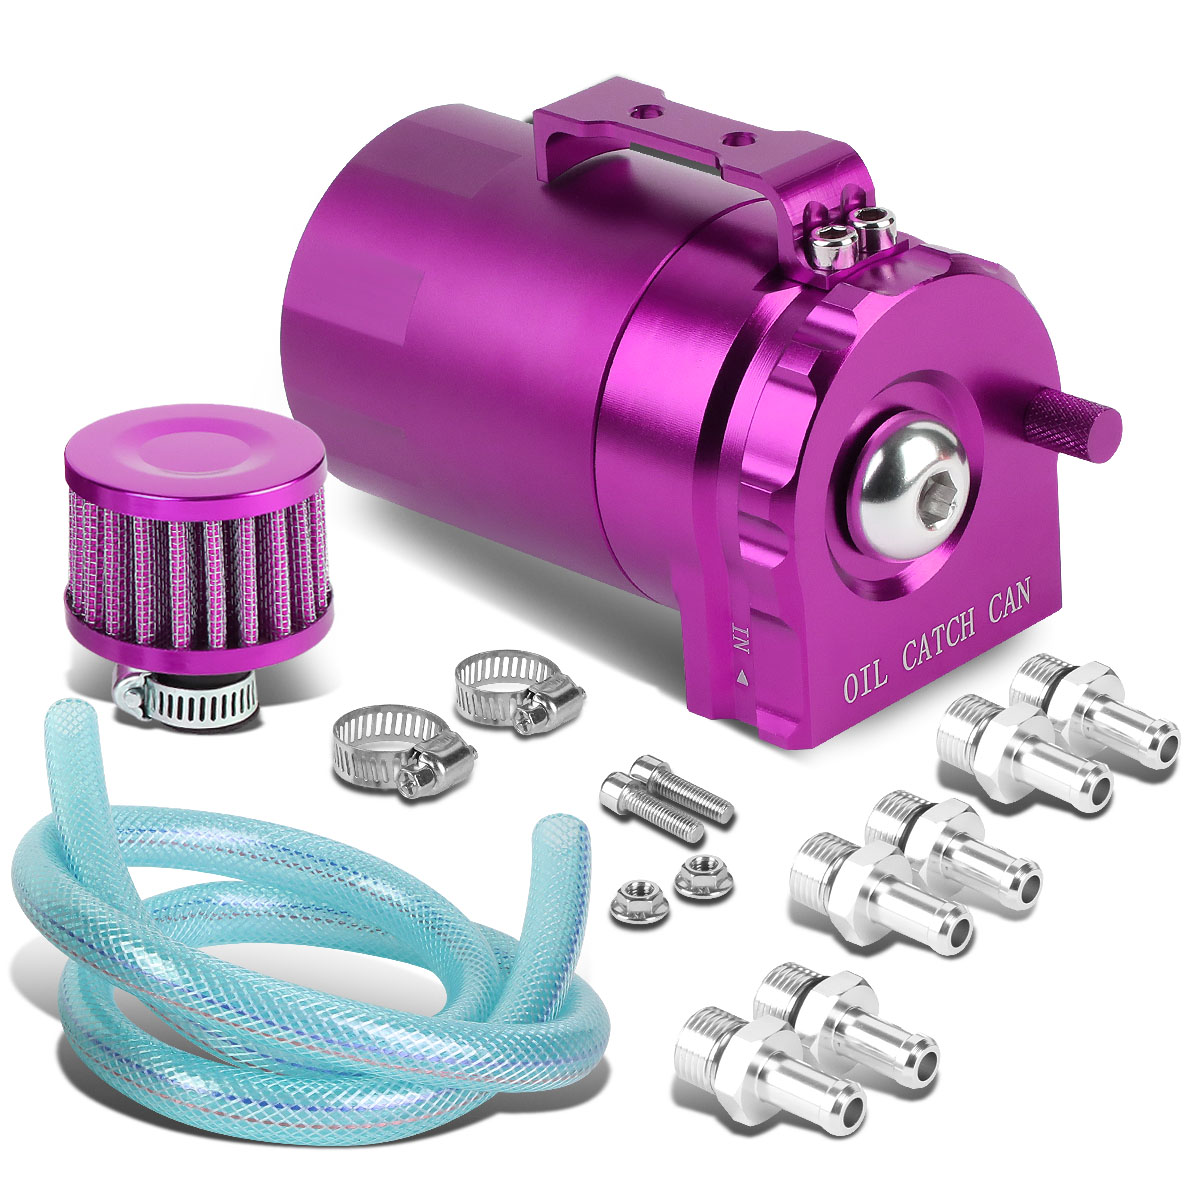 Univeral Aluminum Cylinder Style Racing Oil Catch Tank + Filter Can - Purple Tank + Filter